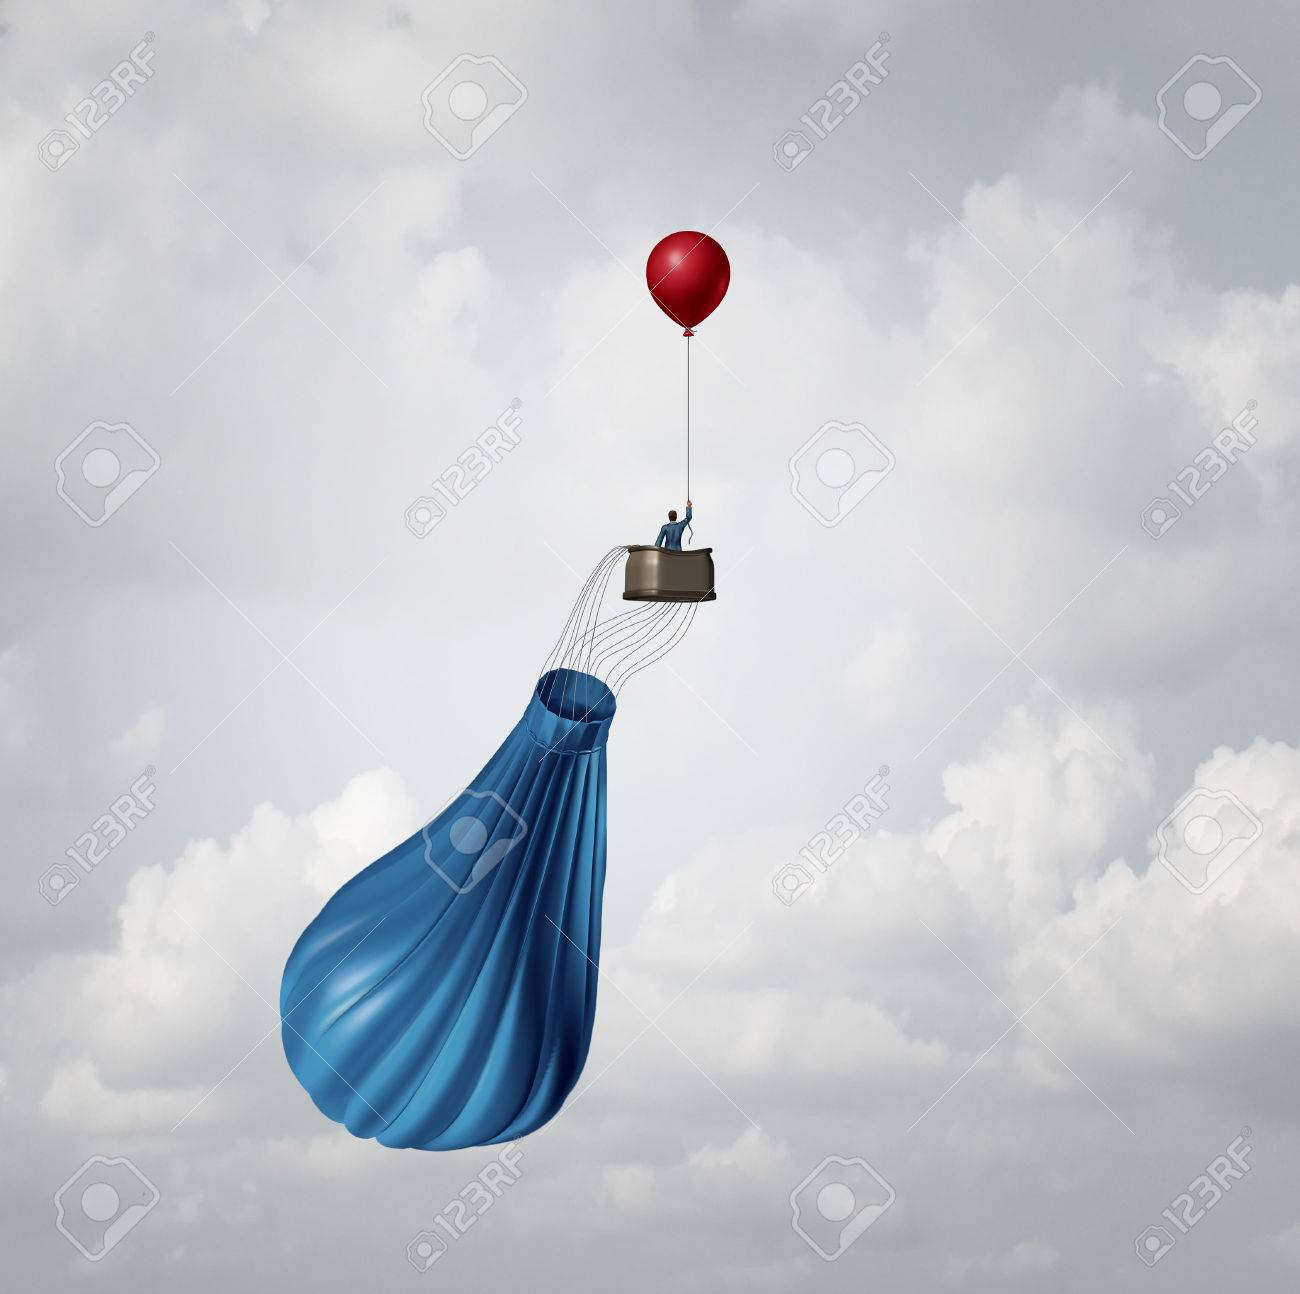 Emergency business plan and crisis management strategy metaphor as a businessman in a broken deflated hot air balloon being saved by a single small balloon as an innovative response solution idea. - 46714587